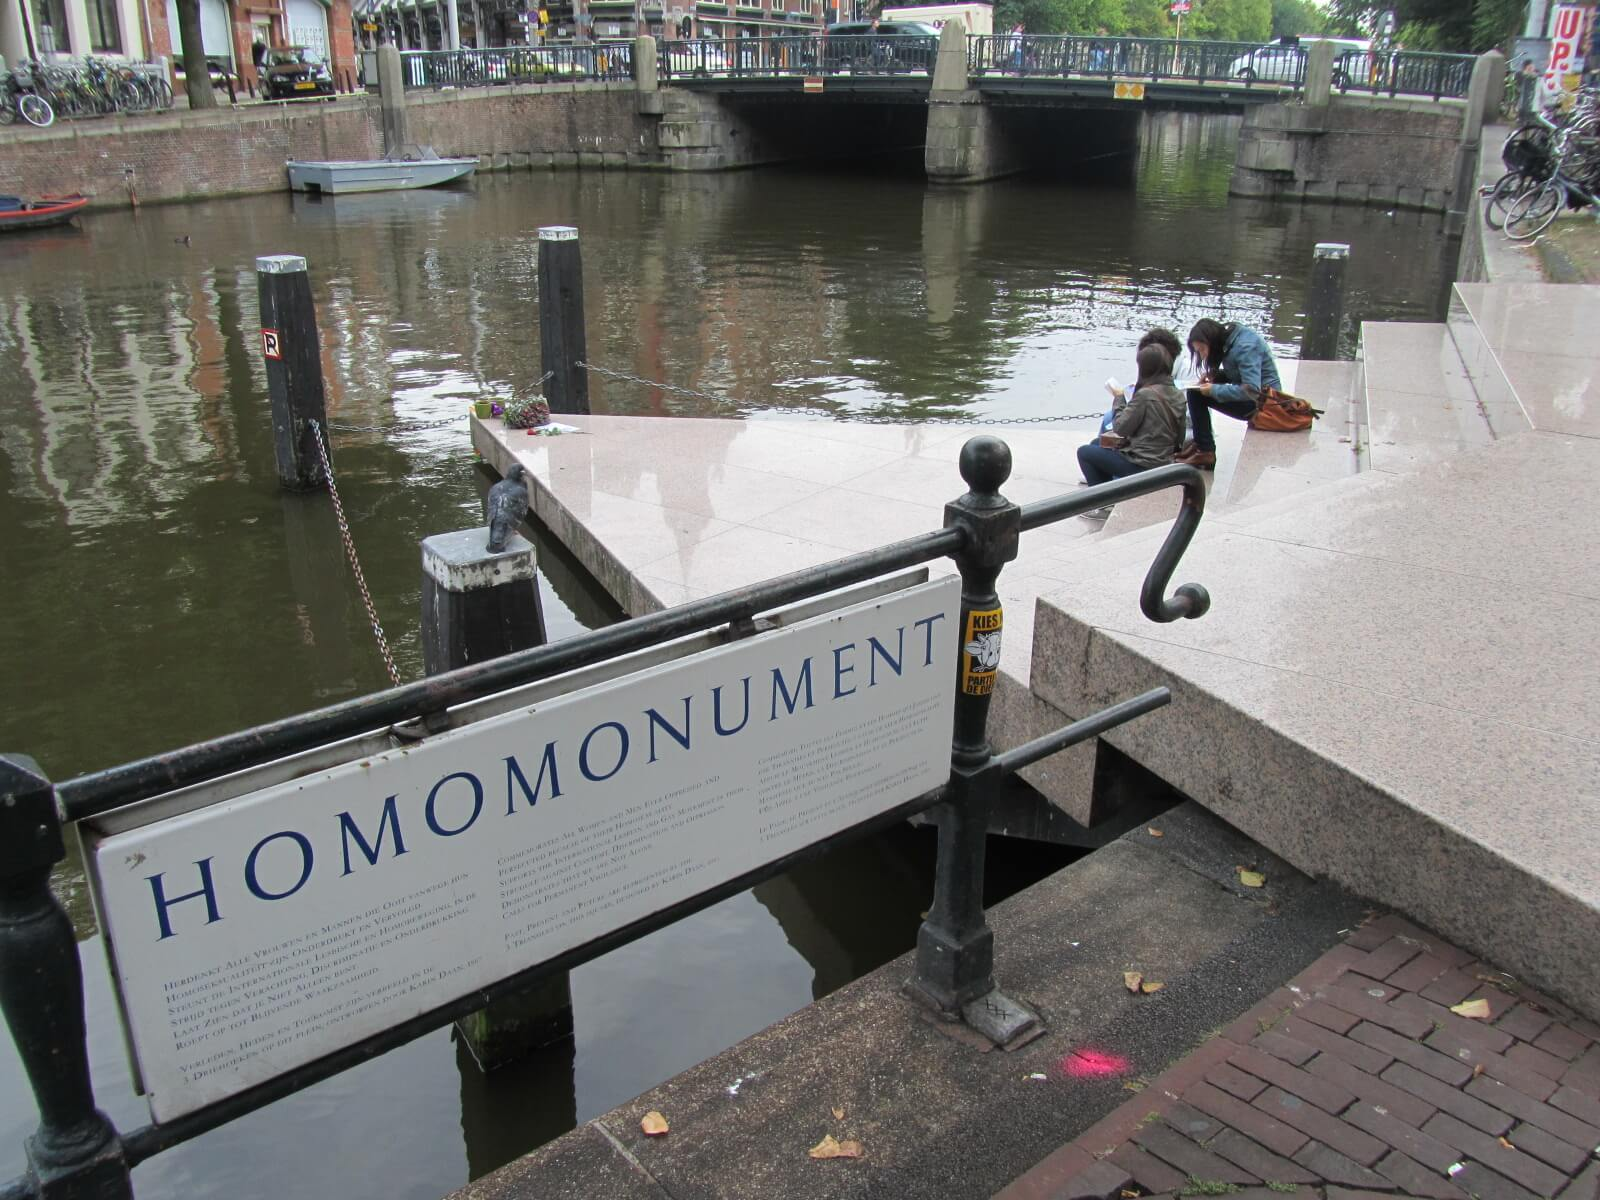 L'Homomonument (Credits: Wikimedia Commons)